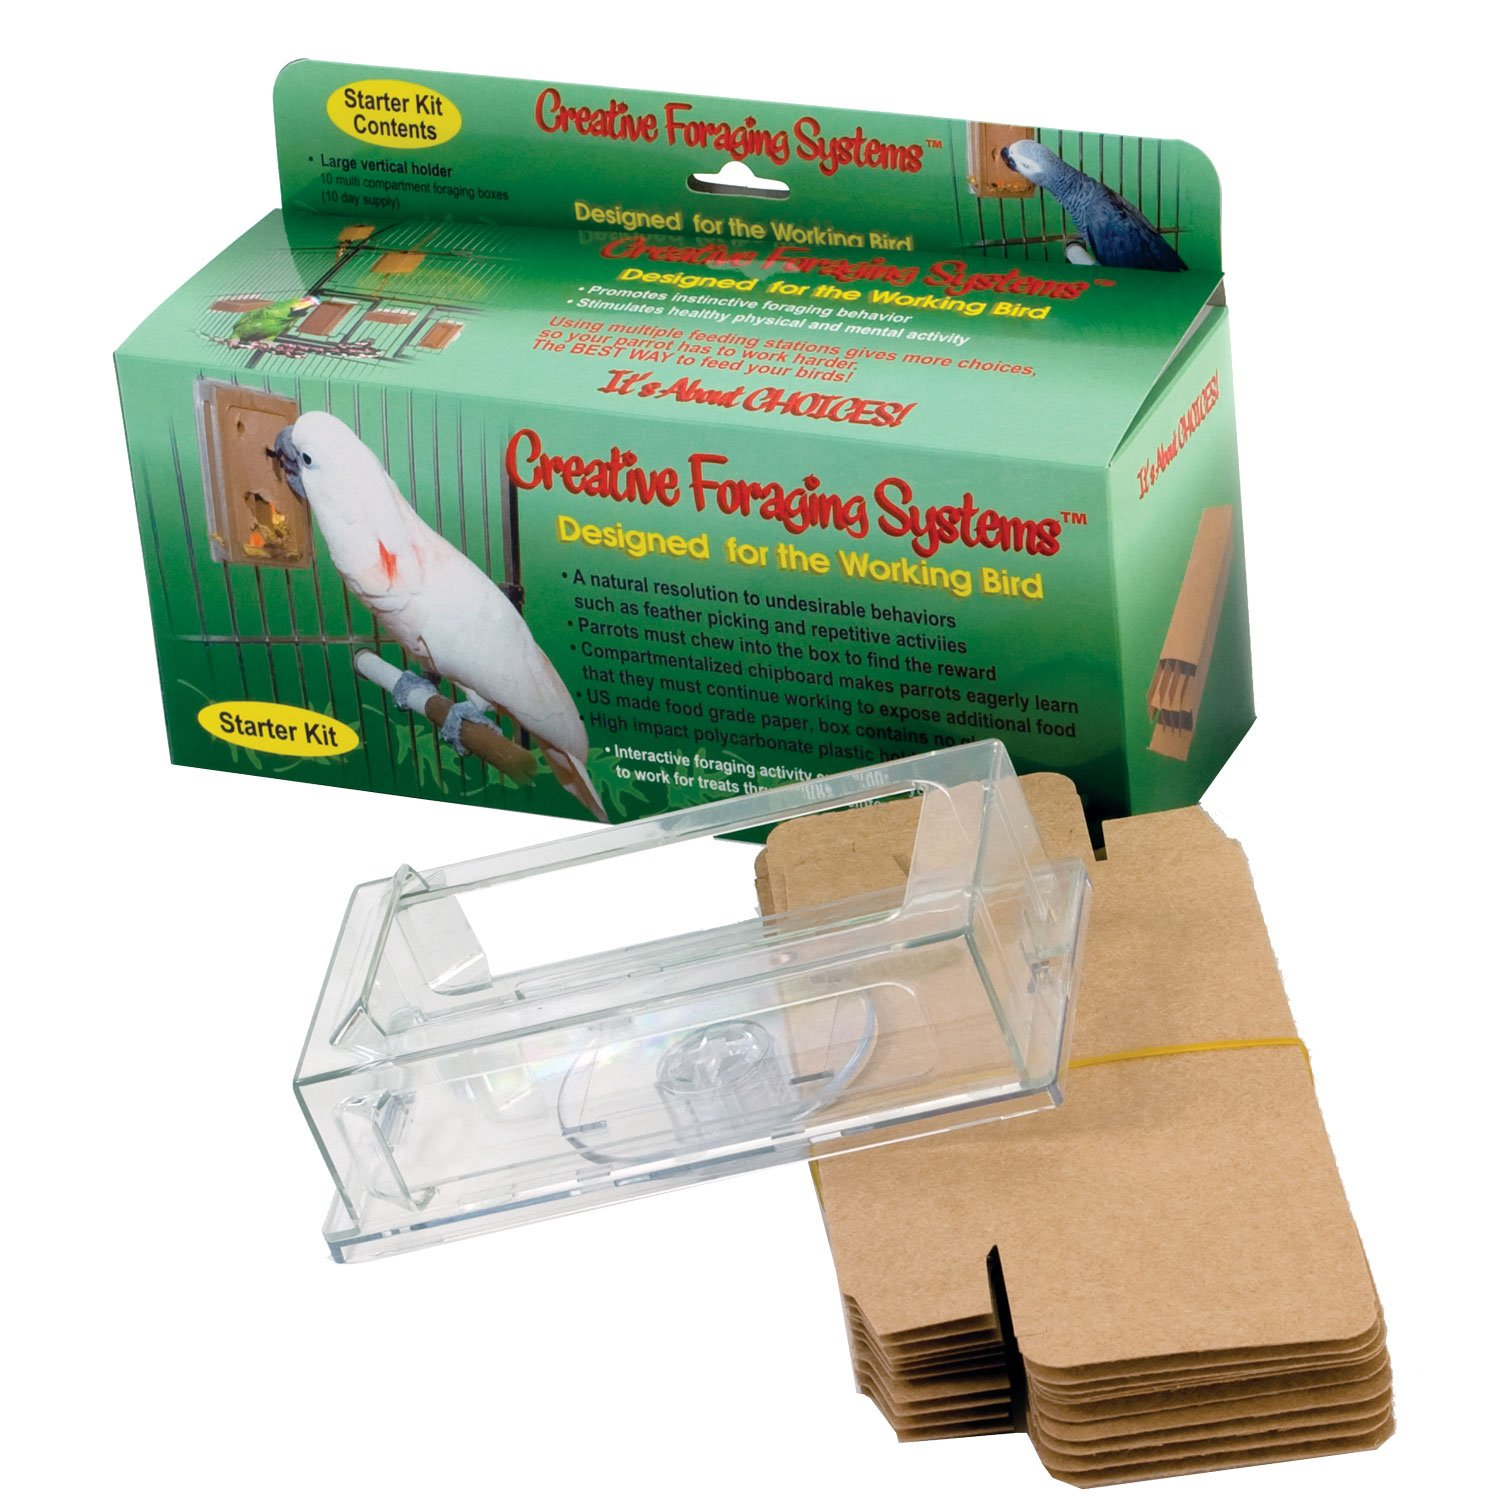 Caitec Creative Foraging Systems Large Foraging Box Starter Kit